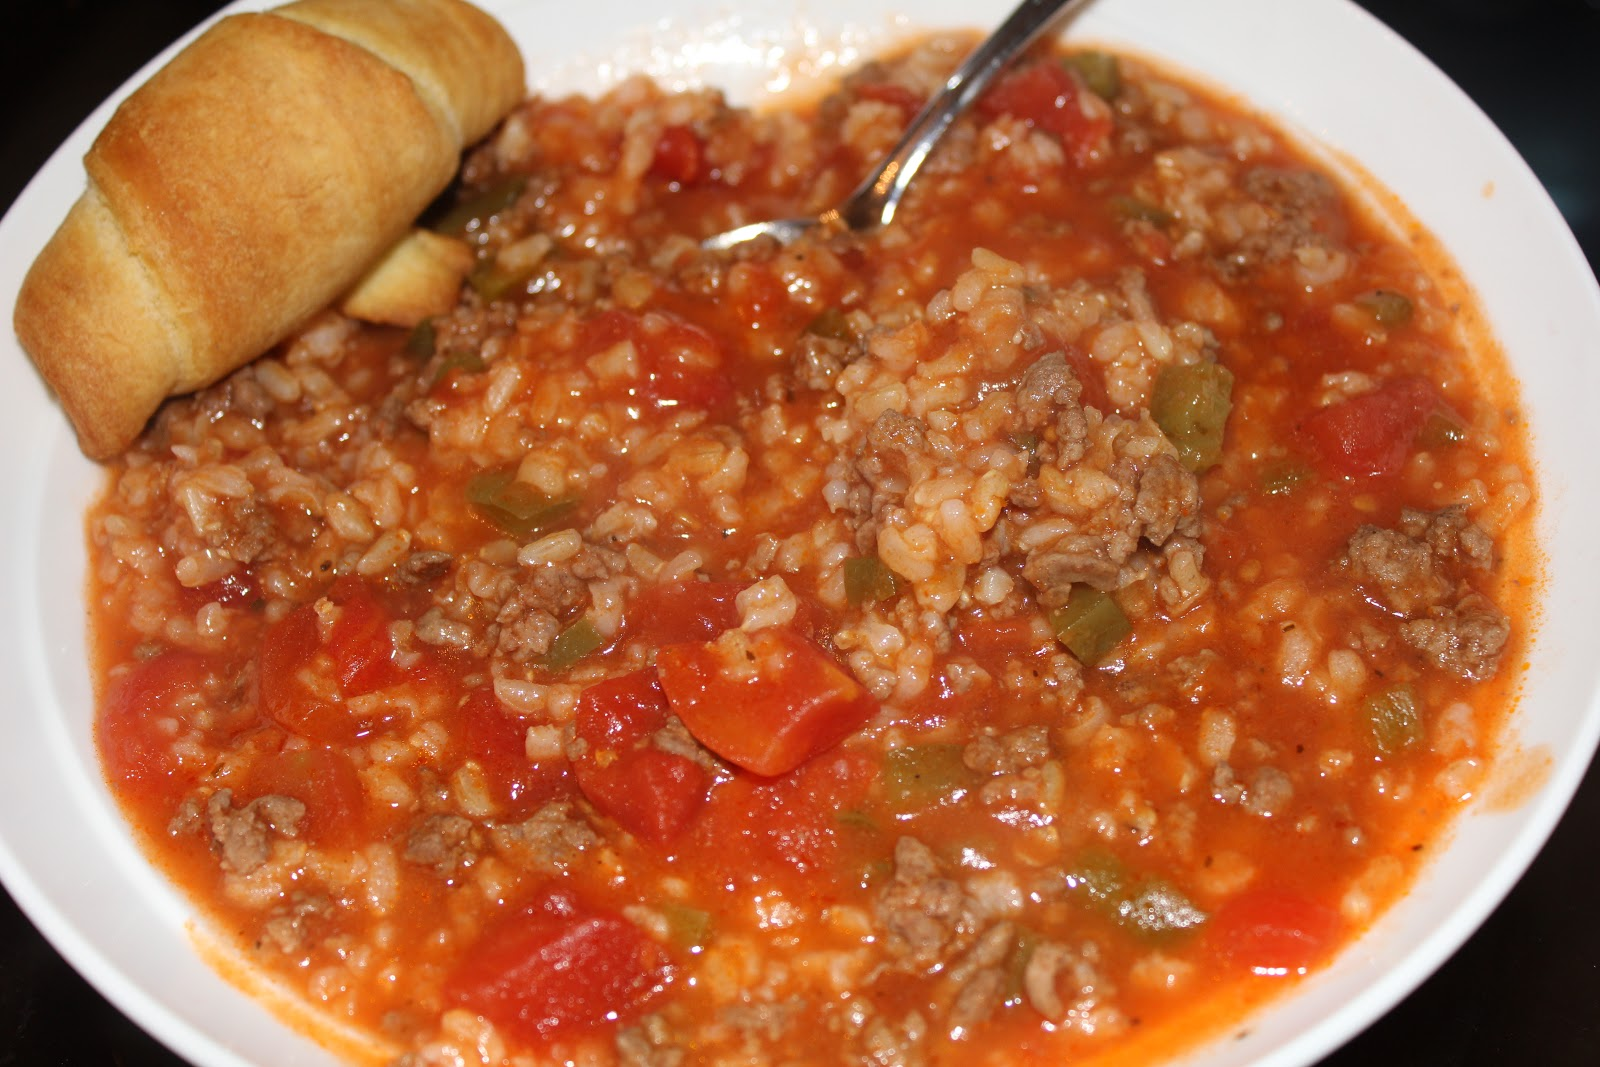 simply made with love: Stuffed Pepper Soup